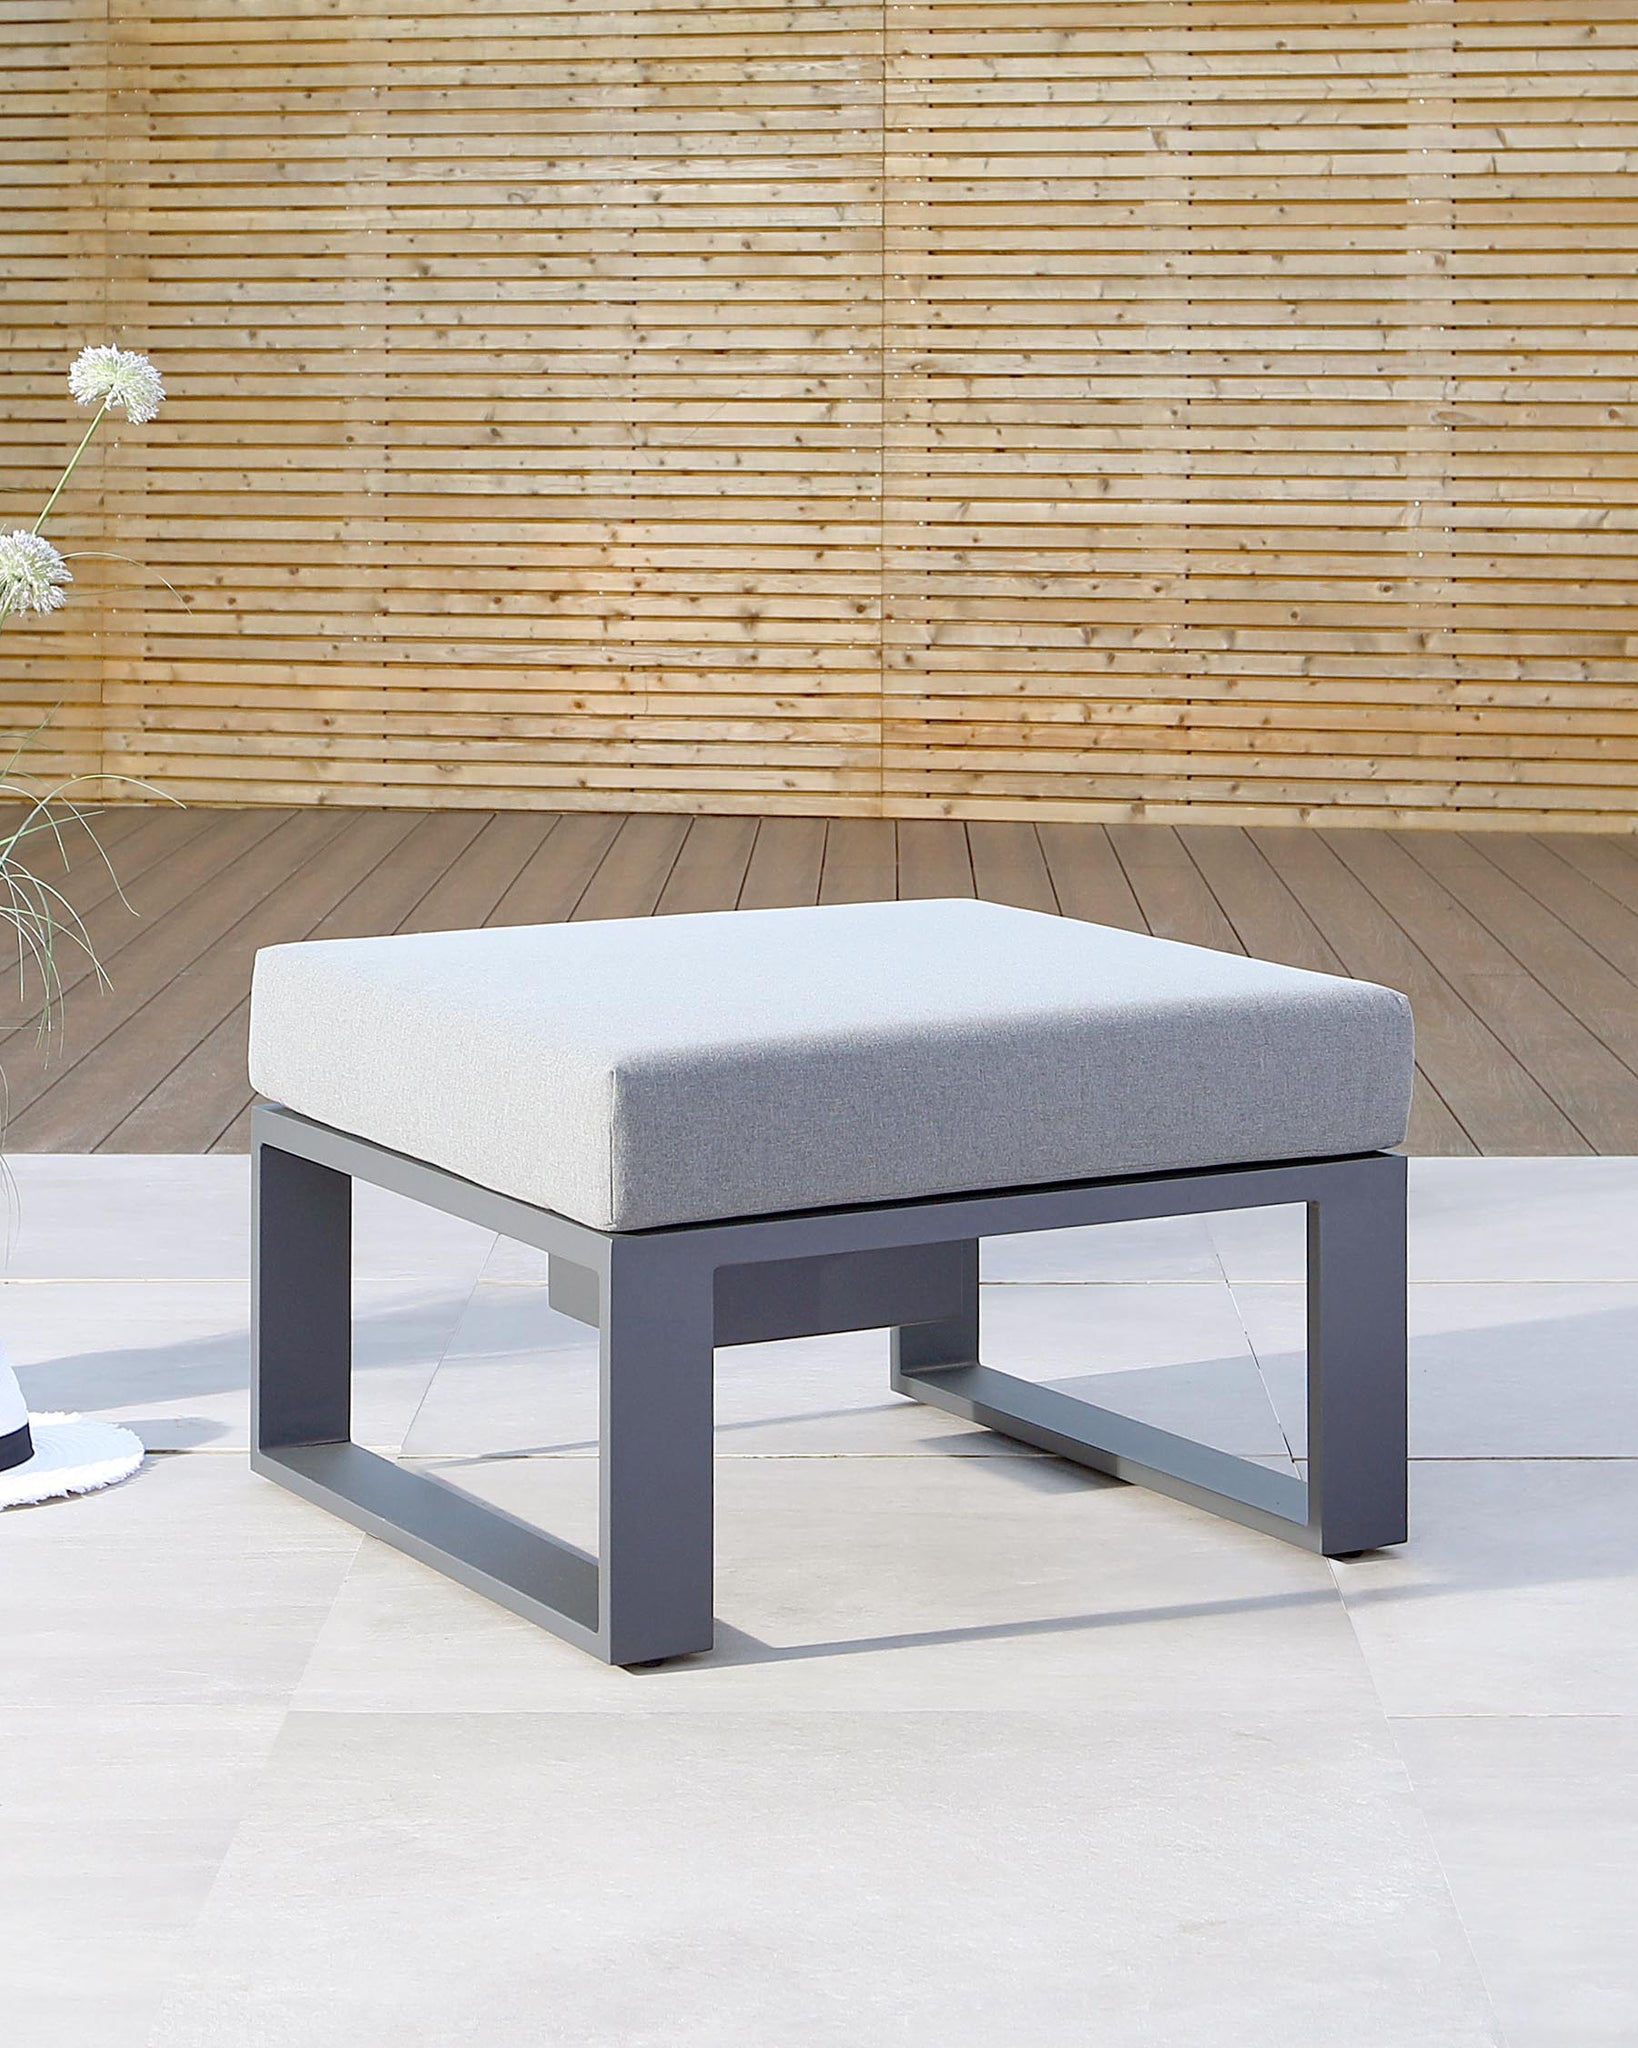 Savannah Grey Garden Coffee Table with Ice Bucket and Cushion